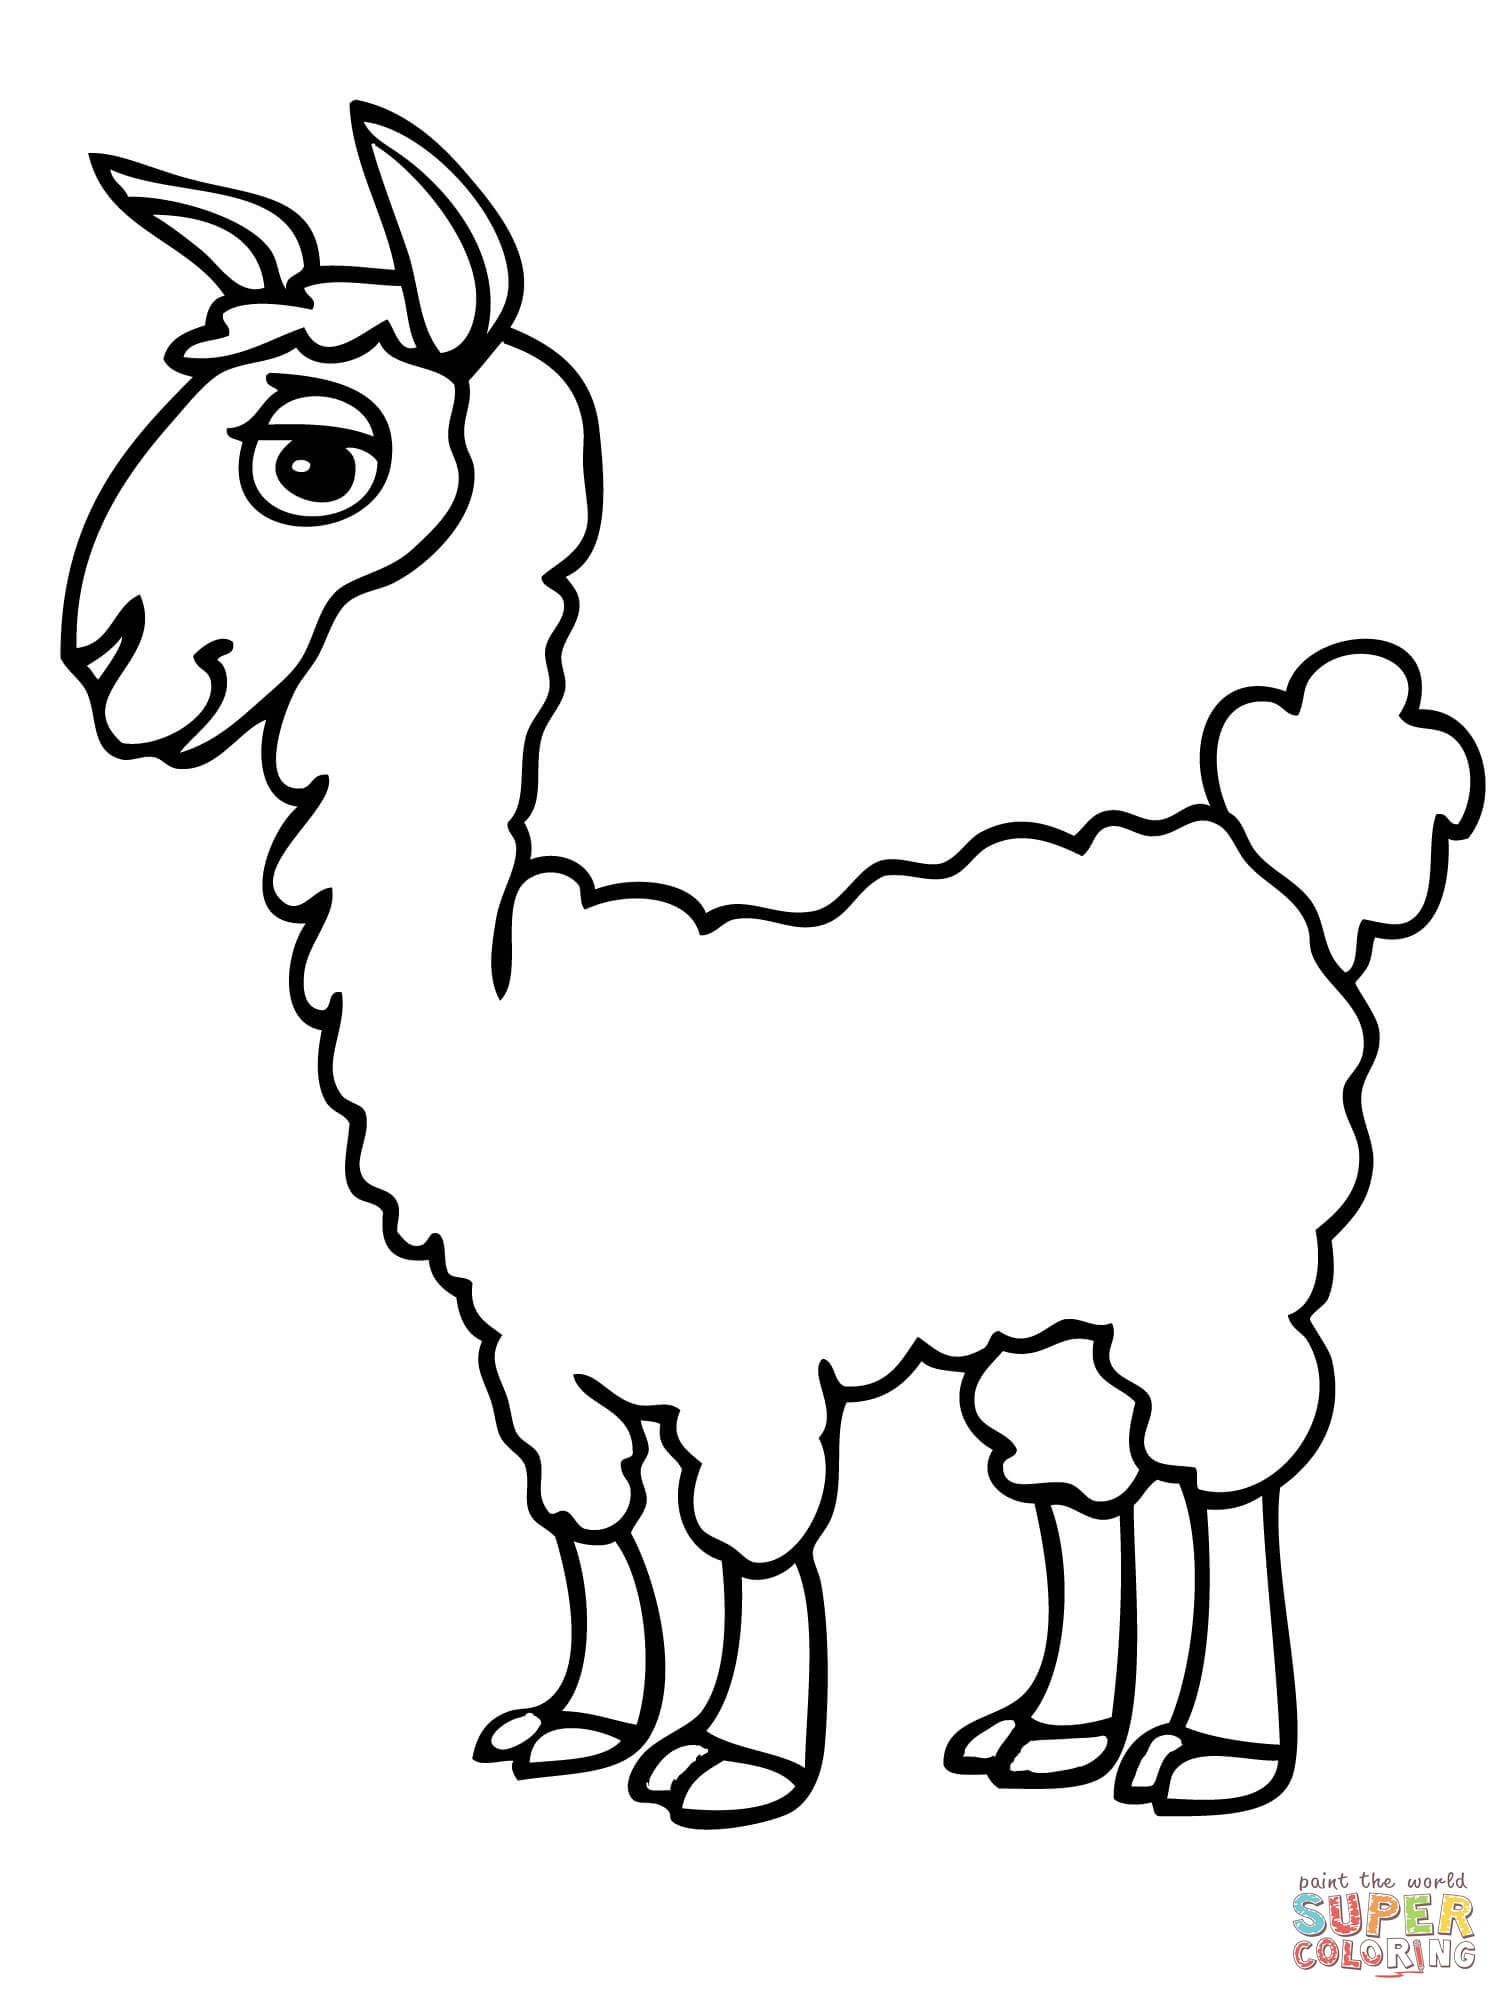 Cute Alpaca Coloring Page Free Printable Coloring Pages Unicorn Coloring Pages Coloring Pages Cute Coloring Pages